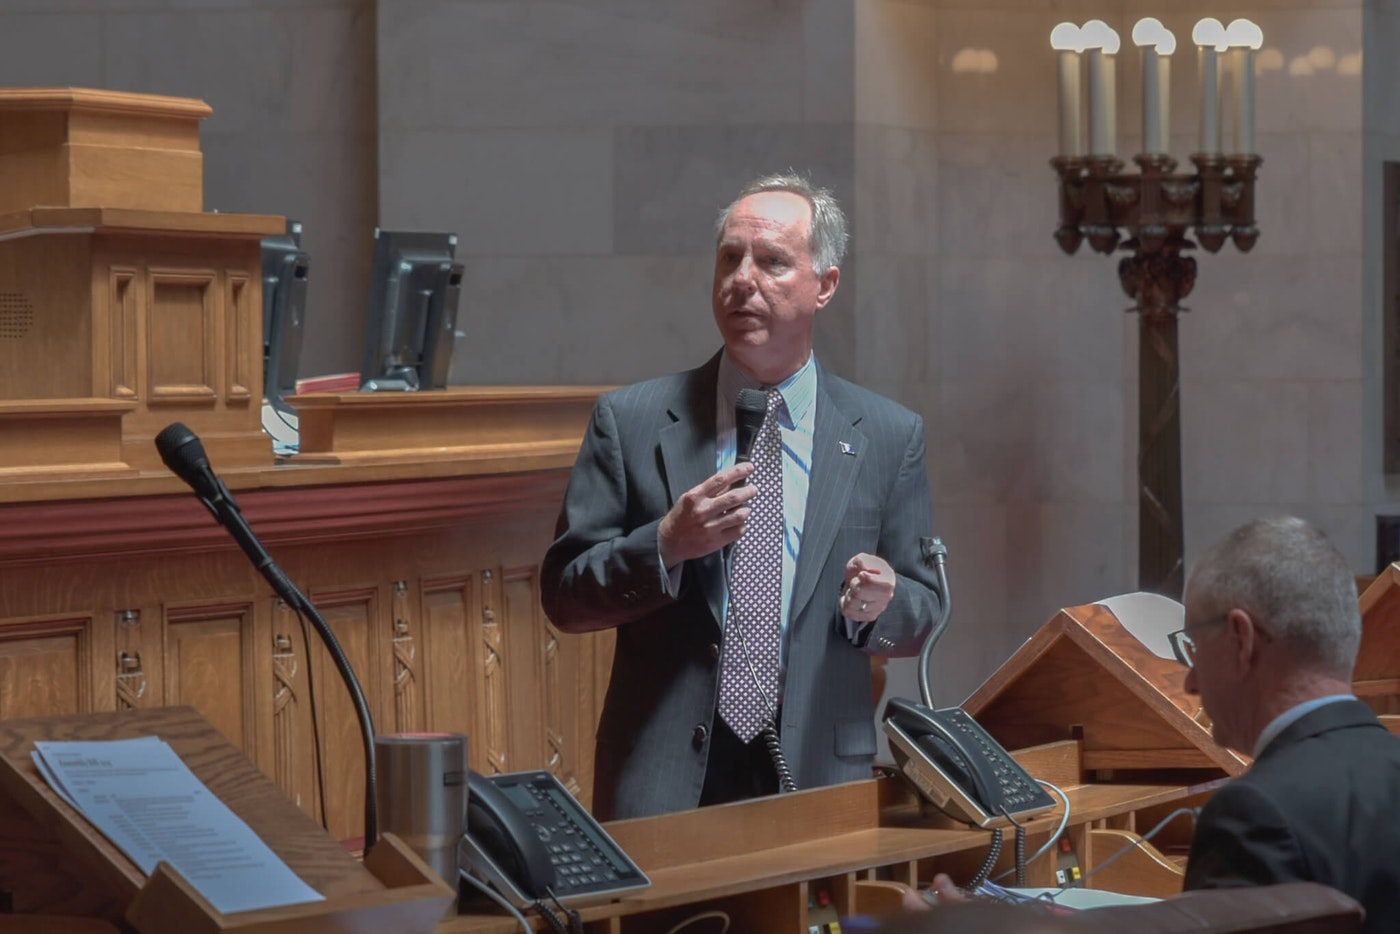 Assembly Speaker Robin Vos (R-Rochester) speaks during a June 22, 2021, Assembly floor session. (Photo by Christina Lieffring)